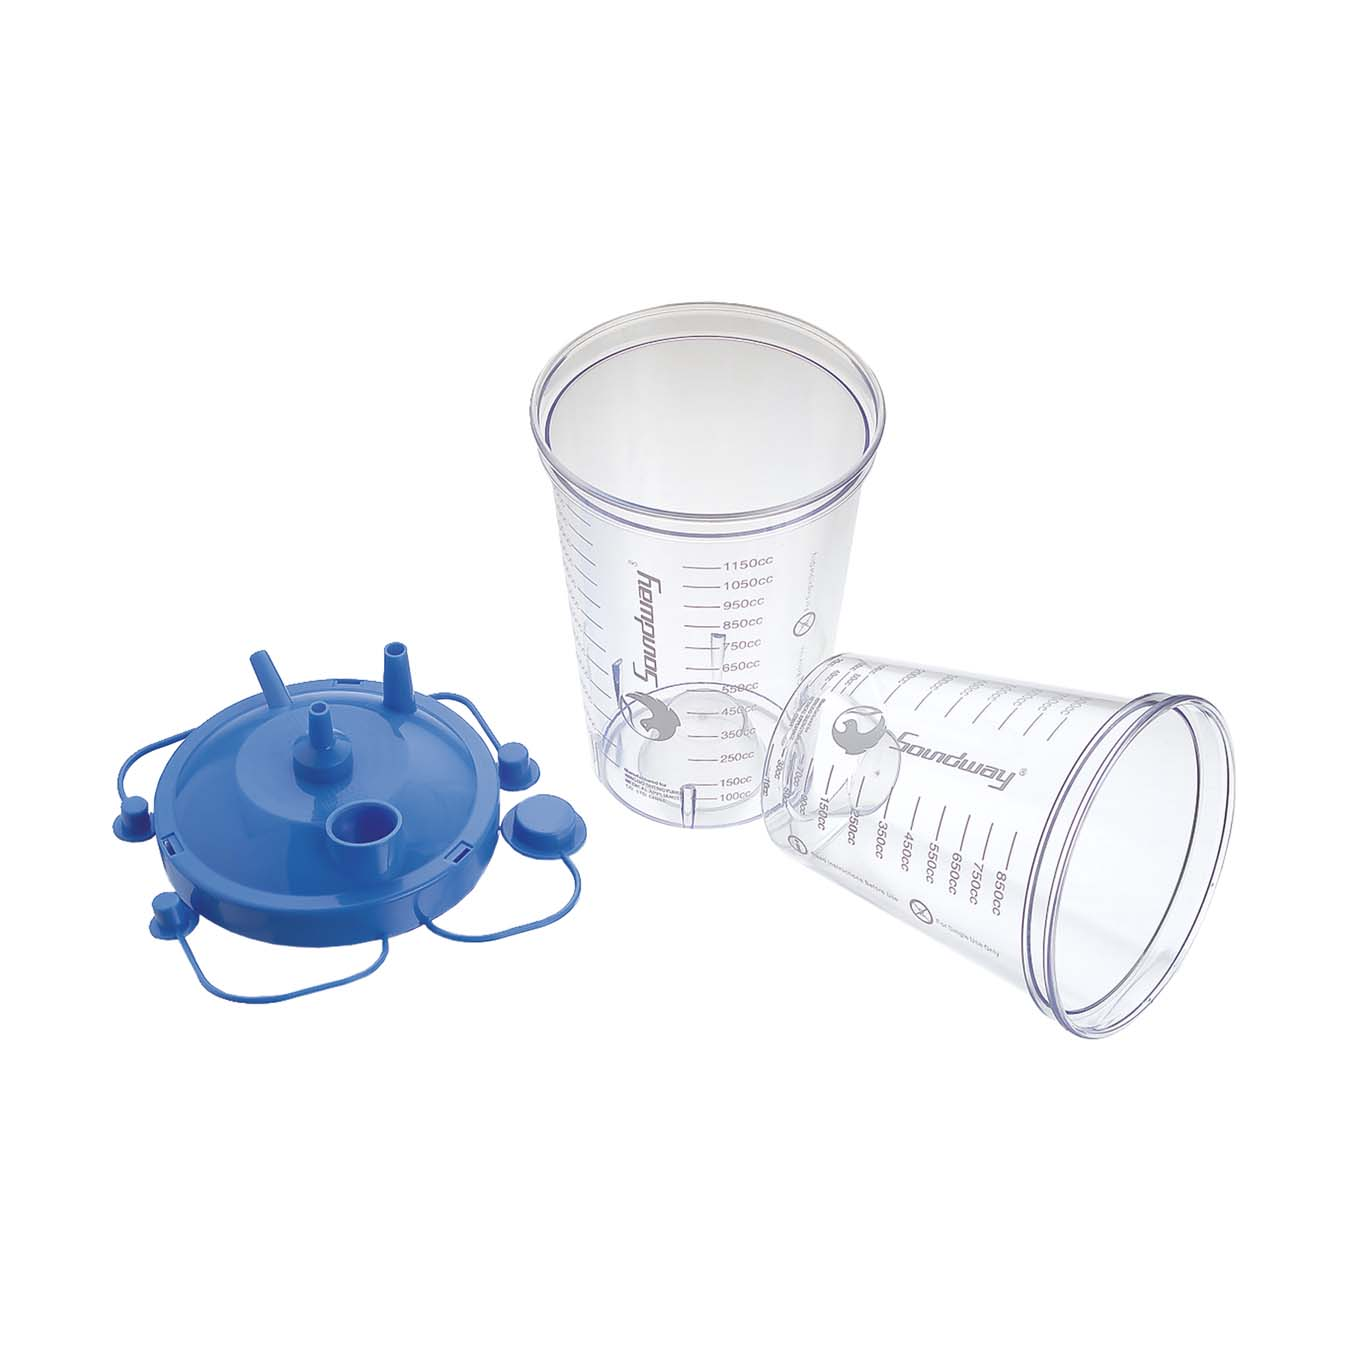 SPCDE0101_1_Suction-Pump-Disposable-Cannister-850cc